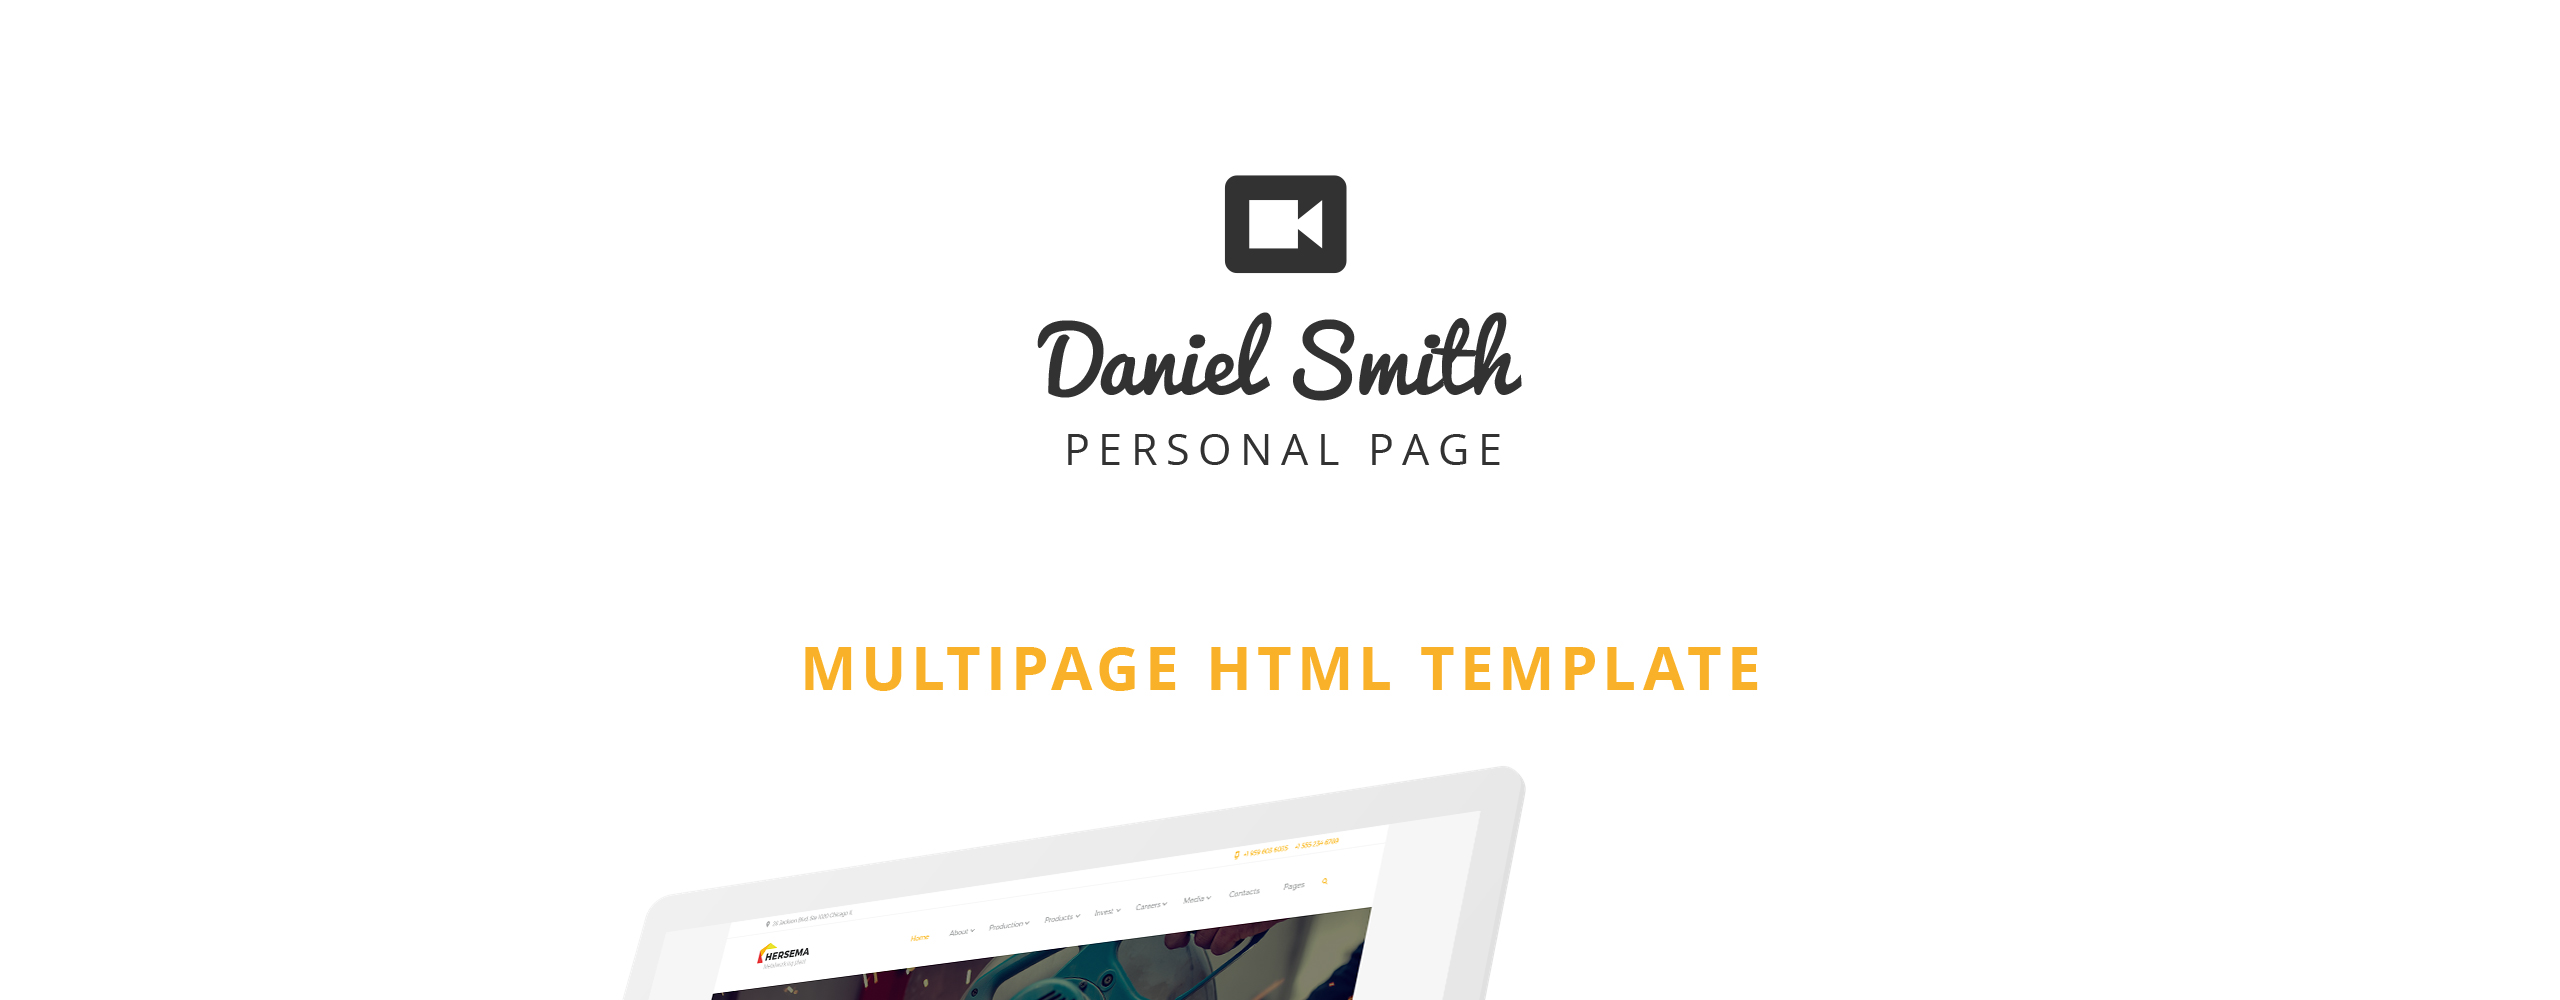 Daniel Smith - Personal Page Responsive Multipage Website Template